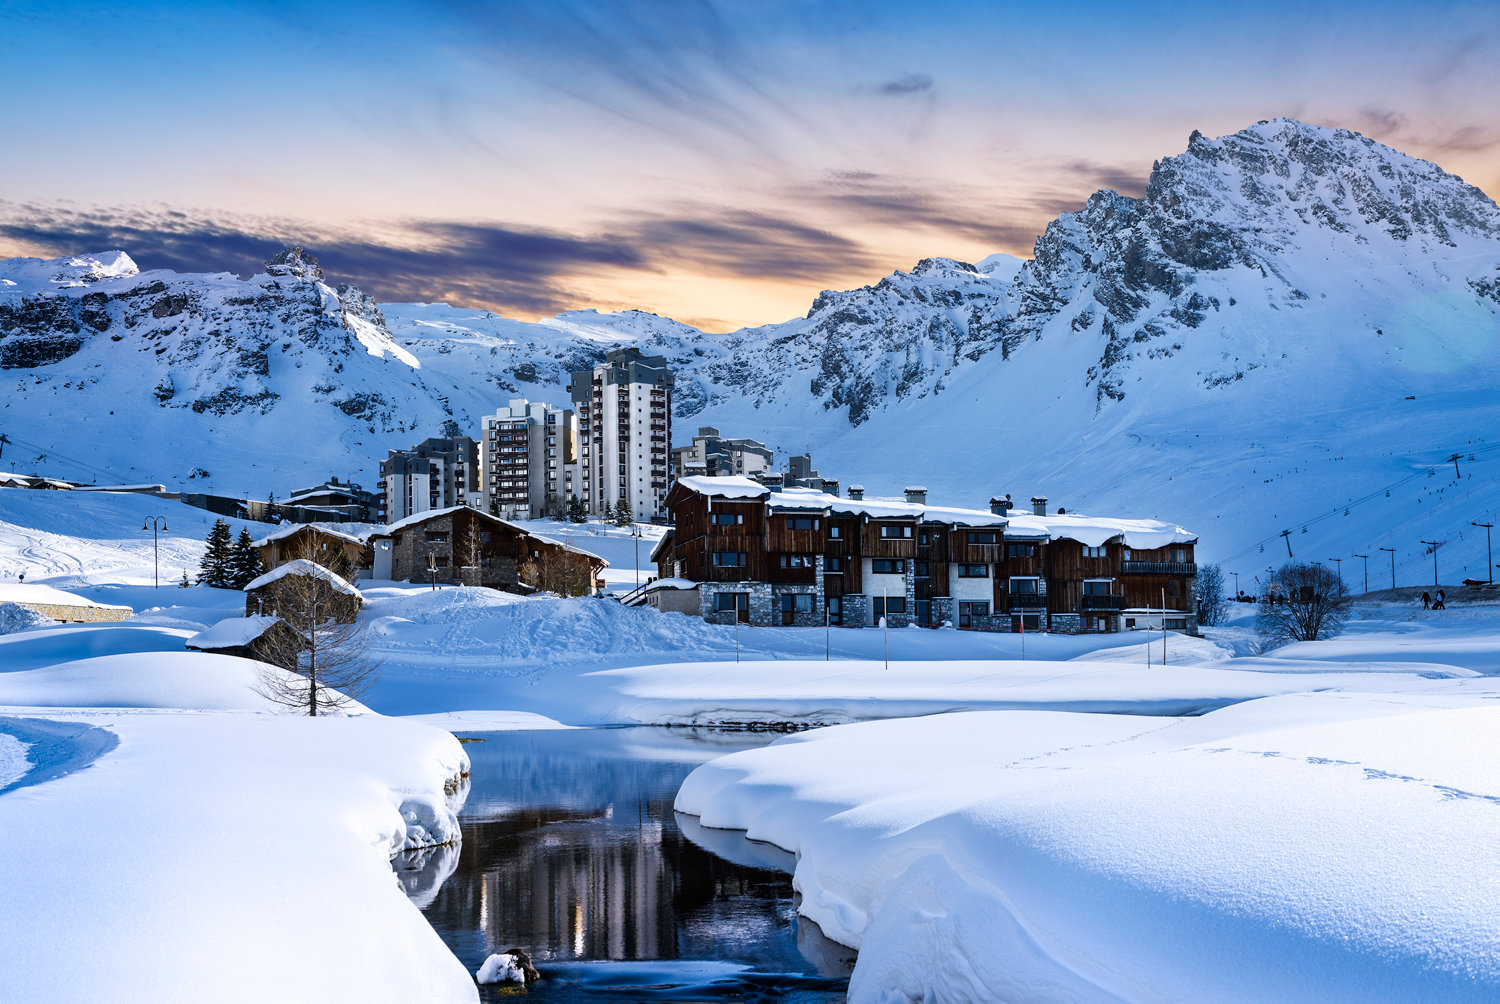 Evening landscape and Club Med ski resort in French Alps,Tignes, France